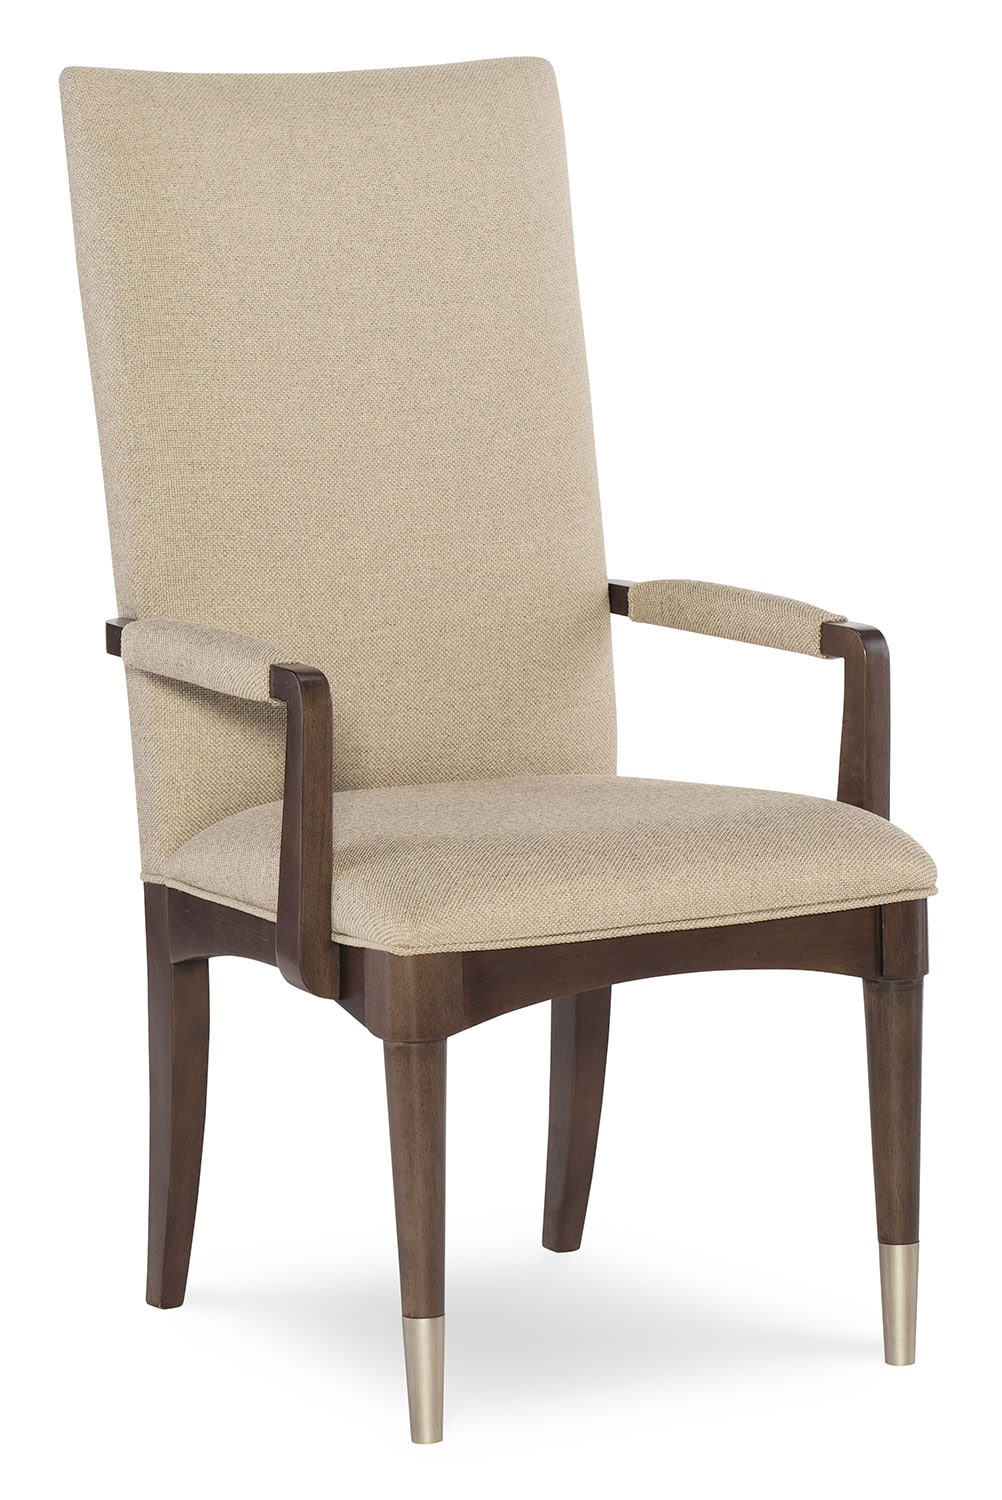 Dining Room Furniture - Rachael Ray Upholstered Arm Chair - Ash Brown